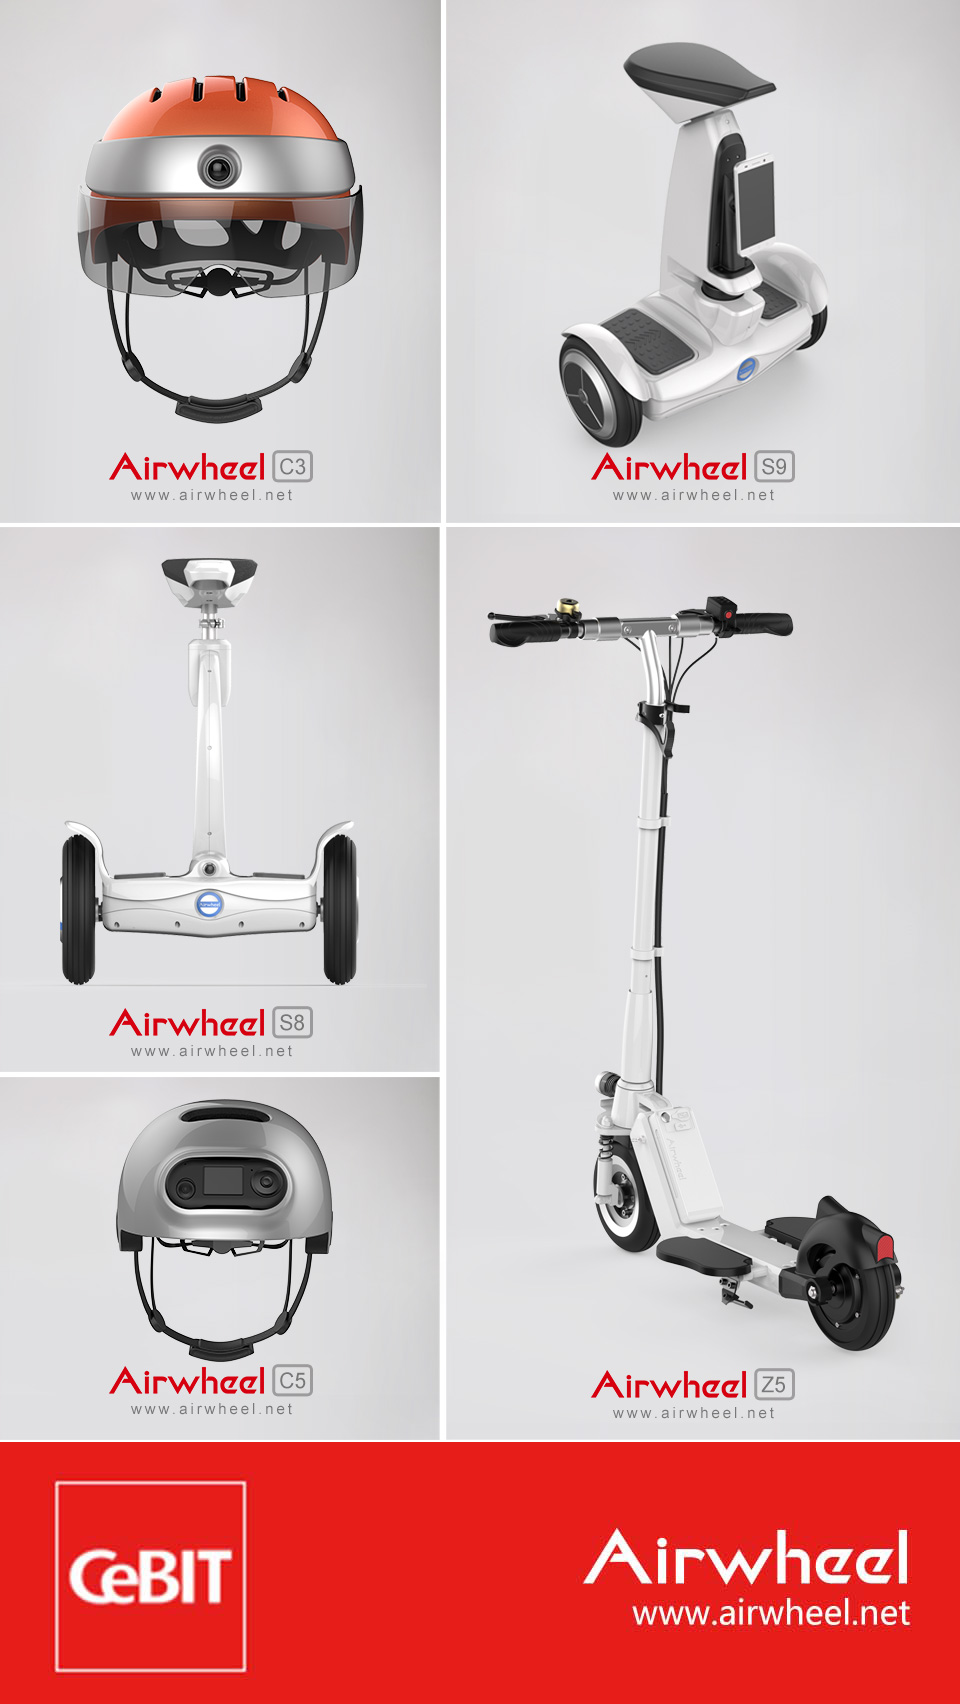 Airwheel new products at CeBIT 2016